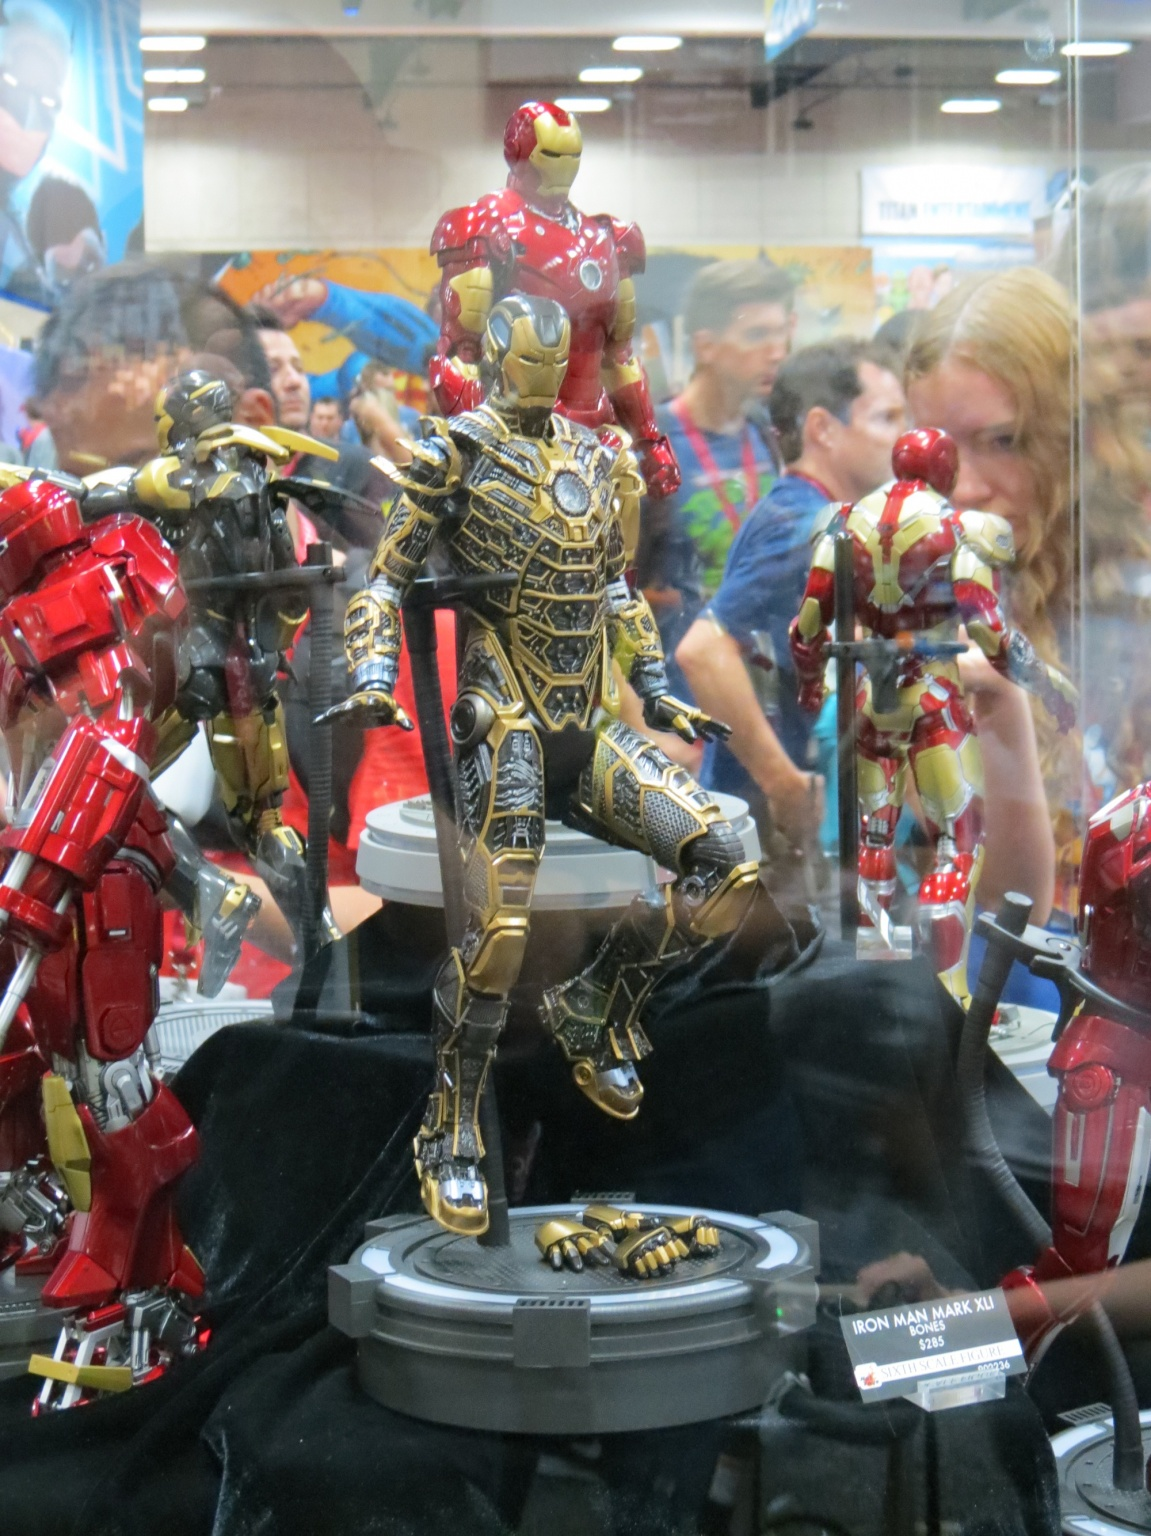 Sideshow Collectibles